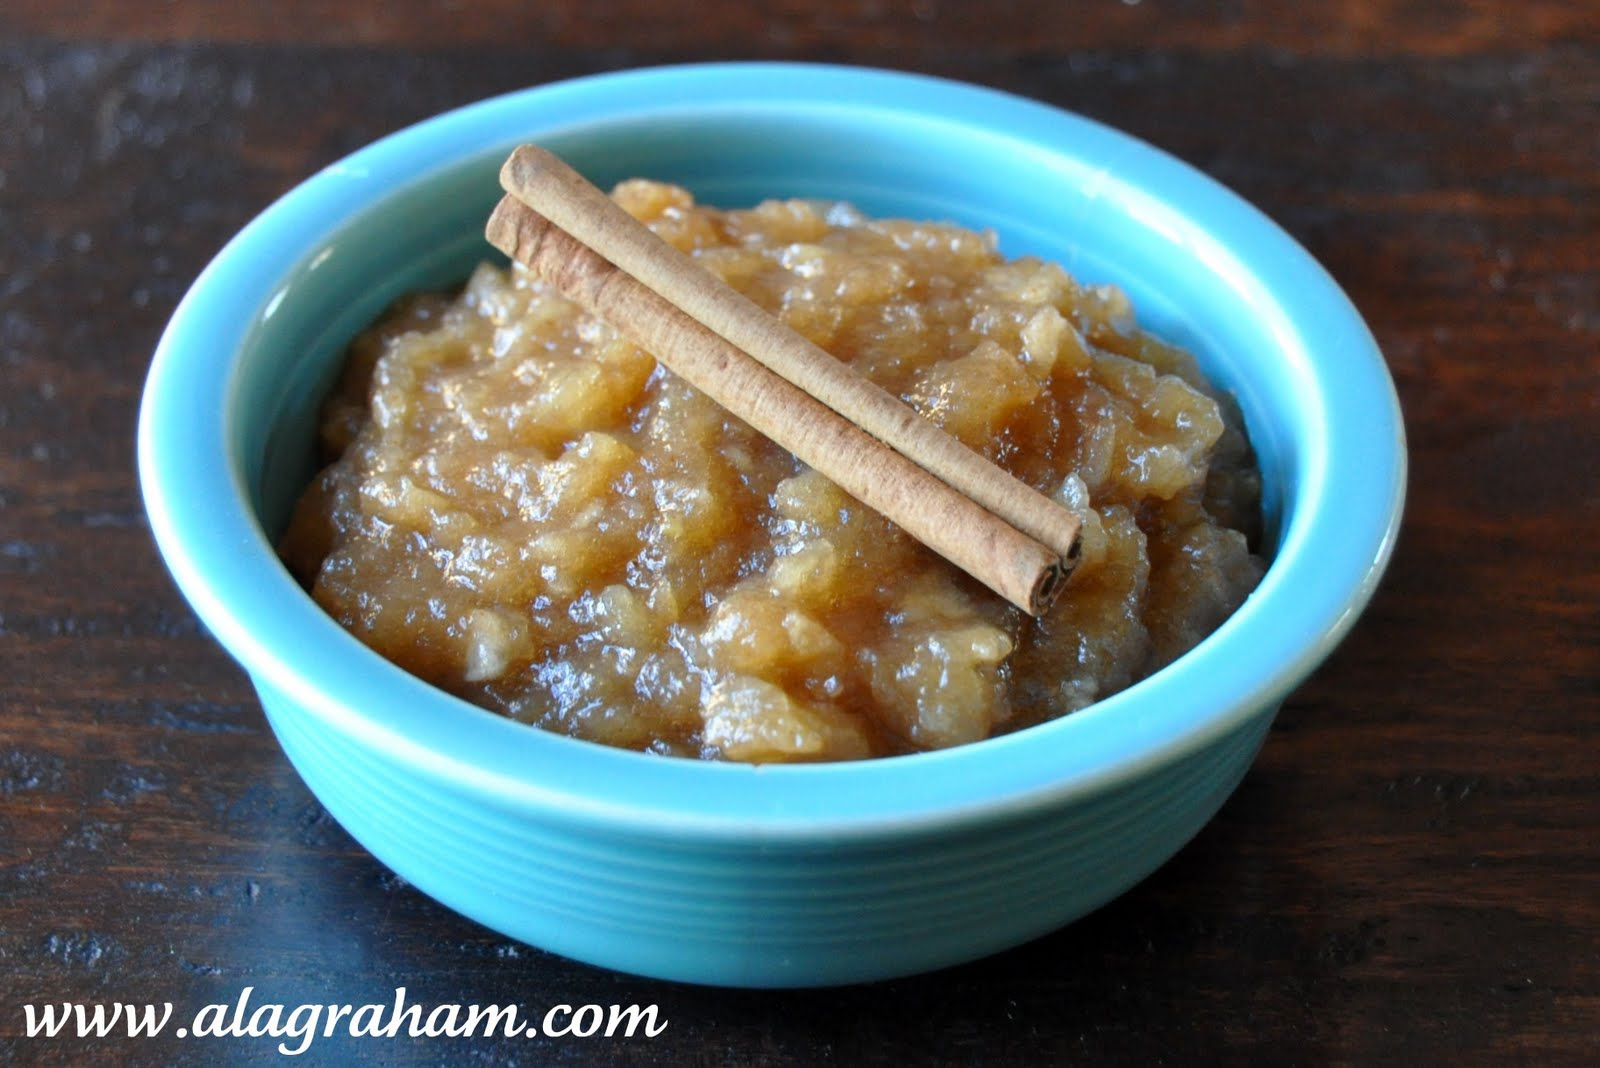 ROASTED APPLESAUCE